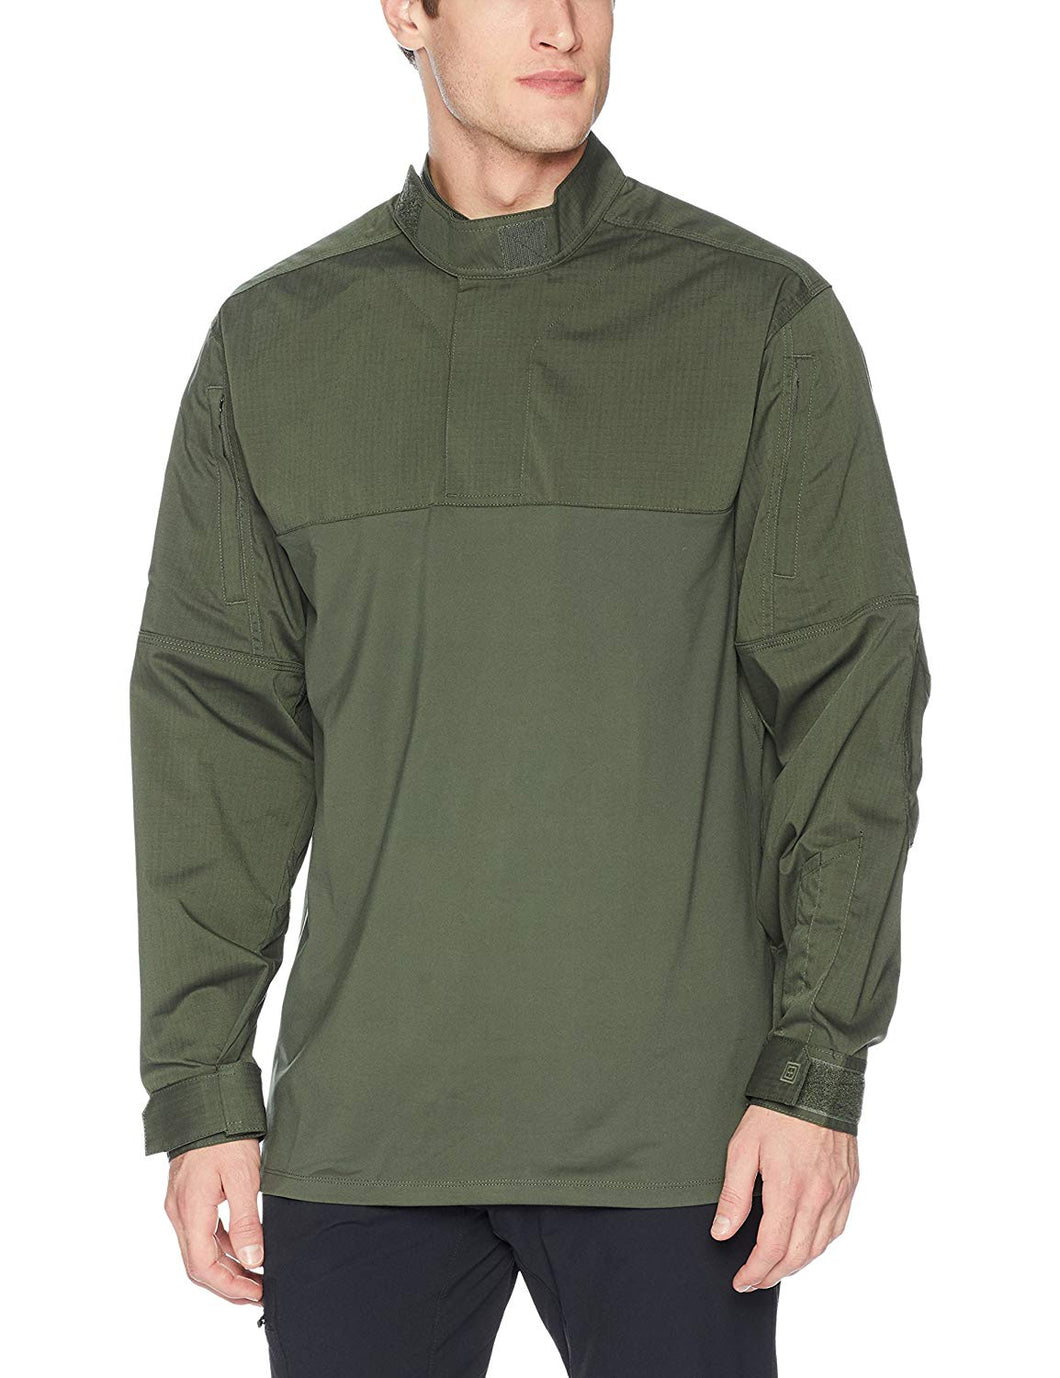 5.11 Tactical - Stryke TDU Long Sleeve Shirt - TDU Green - 72416